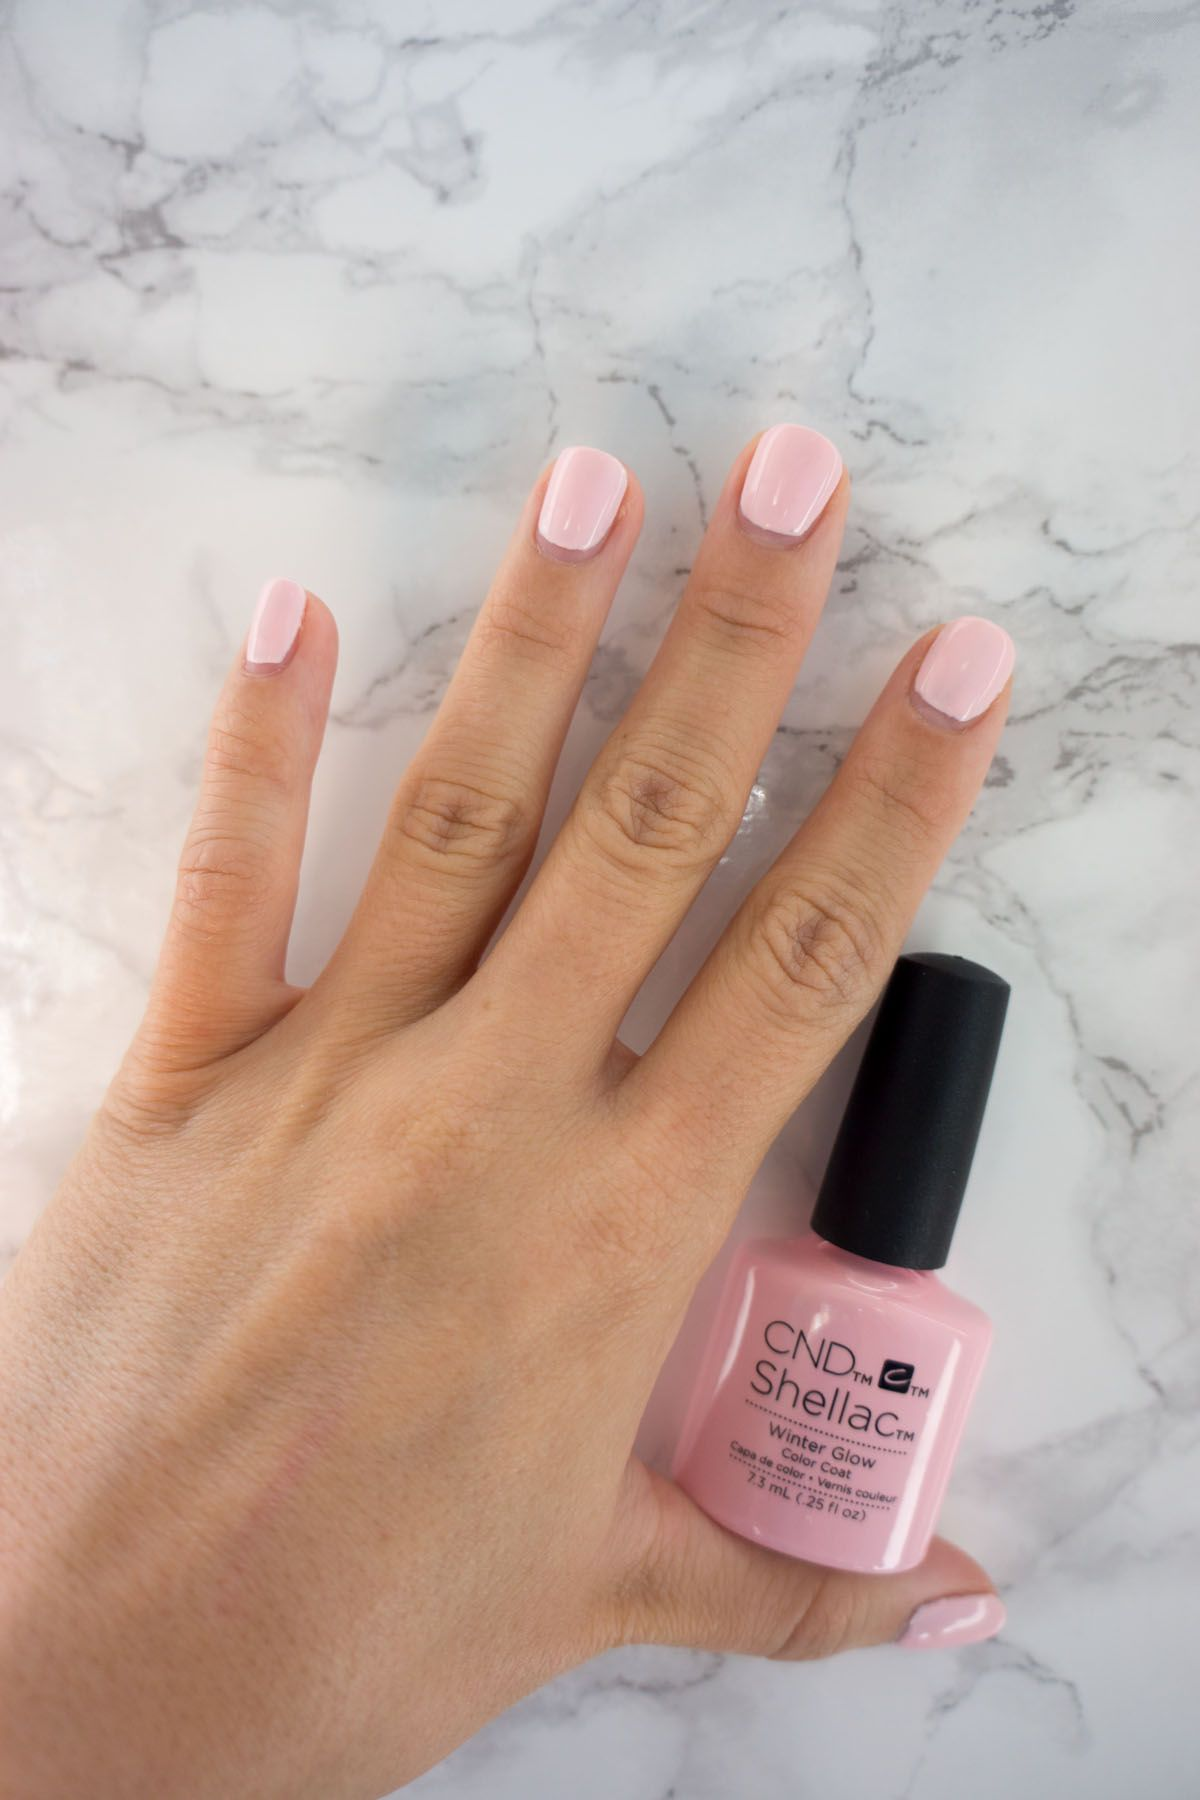 Ultimate Guide To At Home Manicure Cnd Shellac Nail Polish Gel Polish Step By Step Guide 14 Shellac Nail Colors Shellac Nail Polish Cnd Shellac Nails